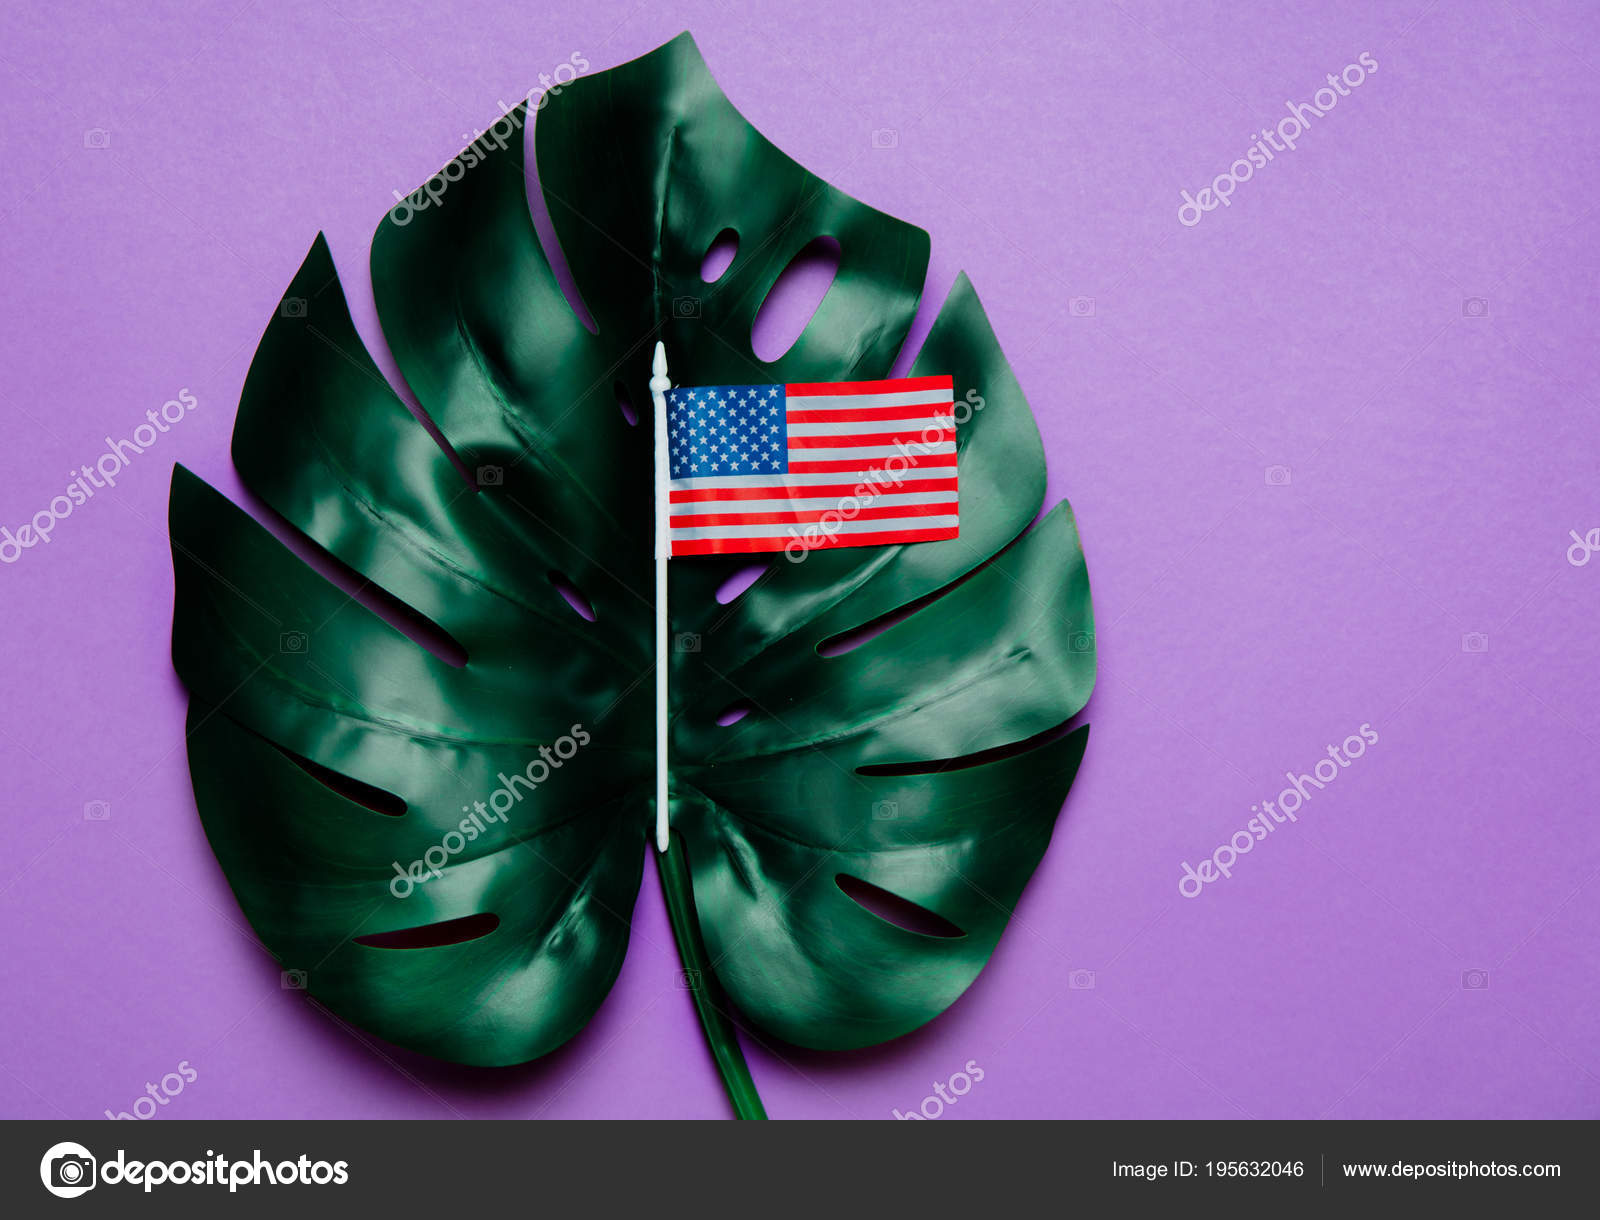 American Flag And Palm Leaf On Purple Background Photo By Massonforstock